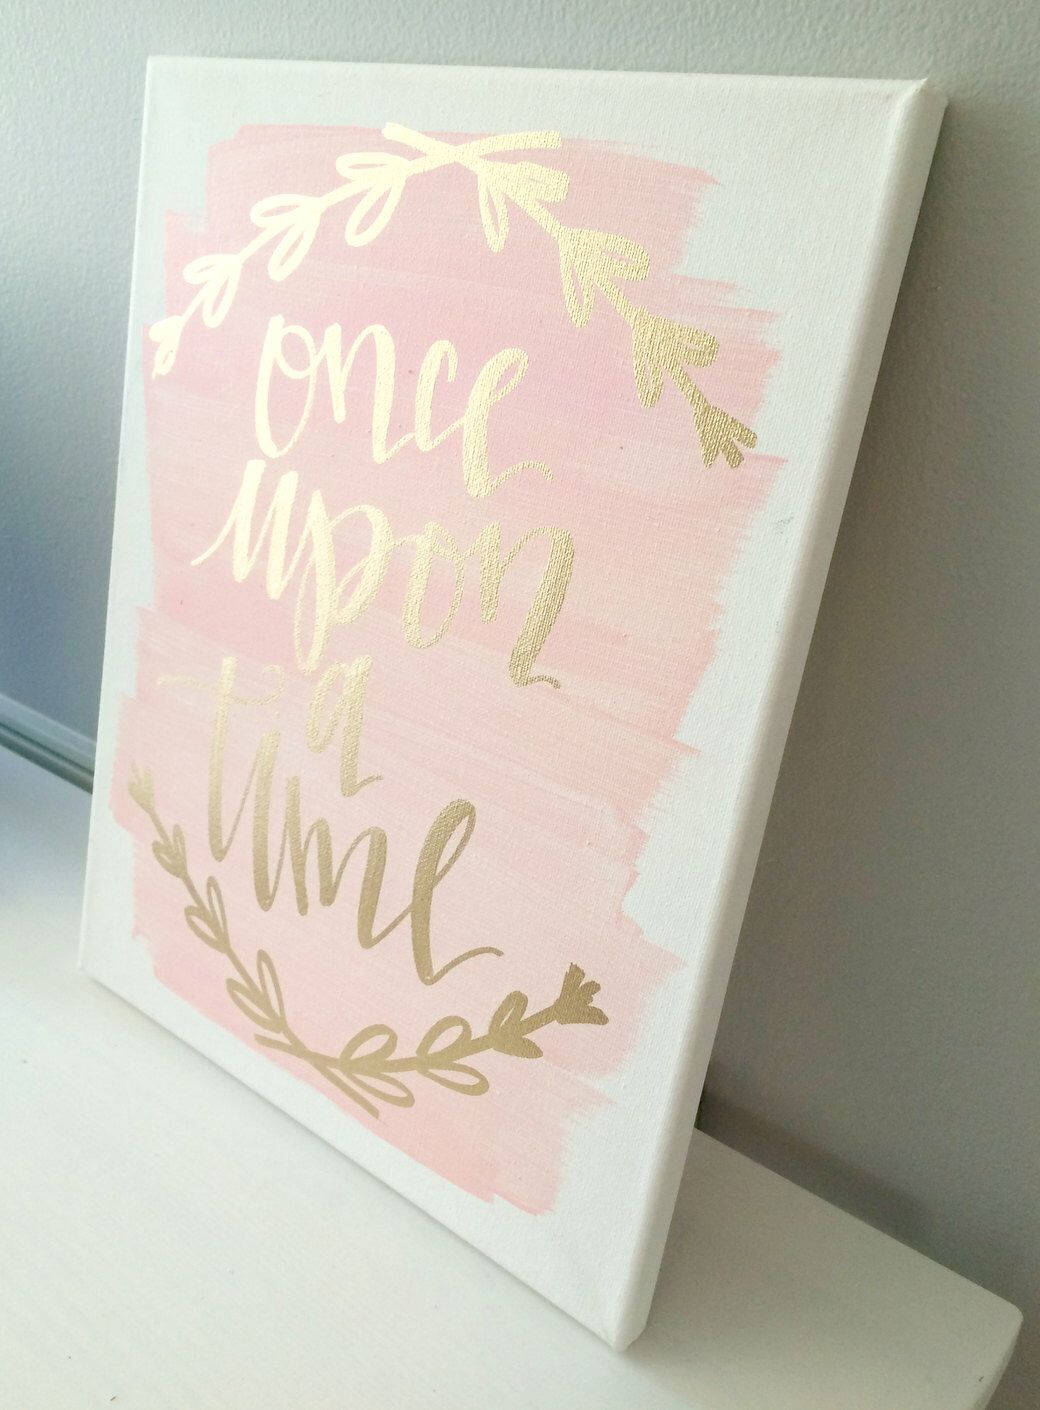 34 Girls Room Decor Ideas to Change The Feel of The Room | Pinterest ...